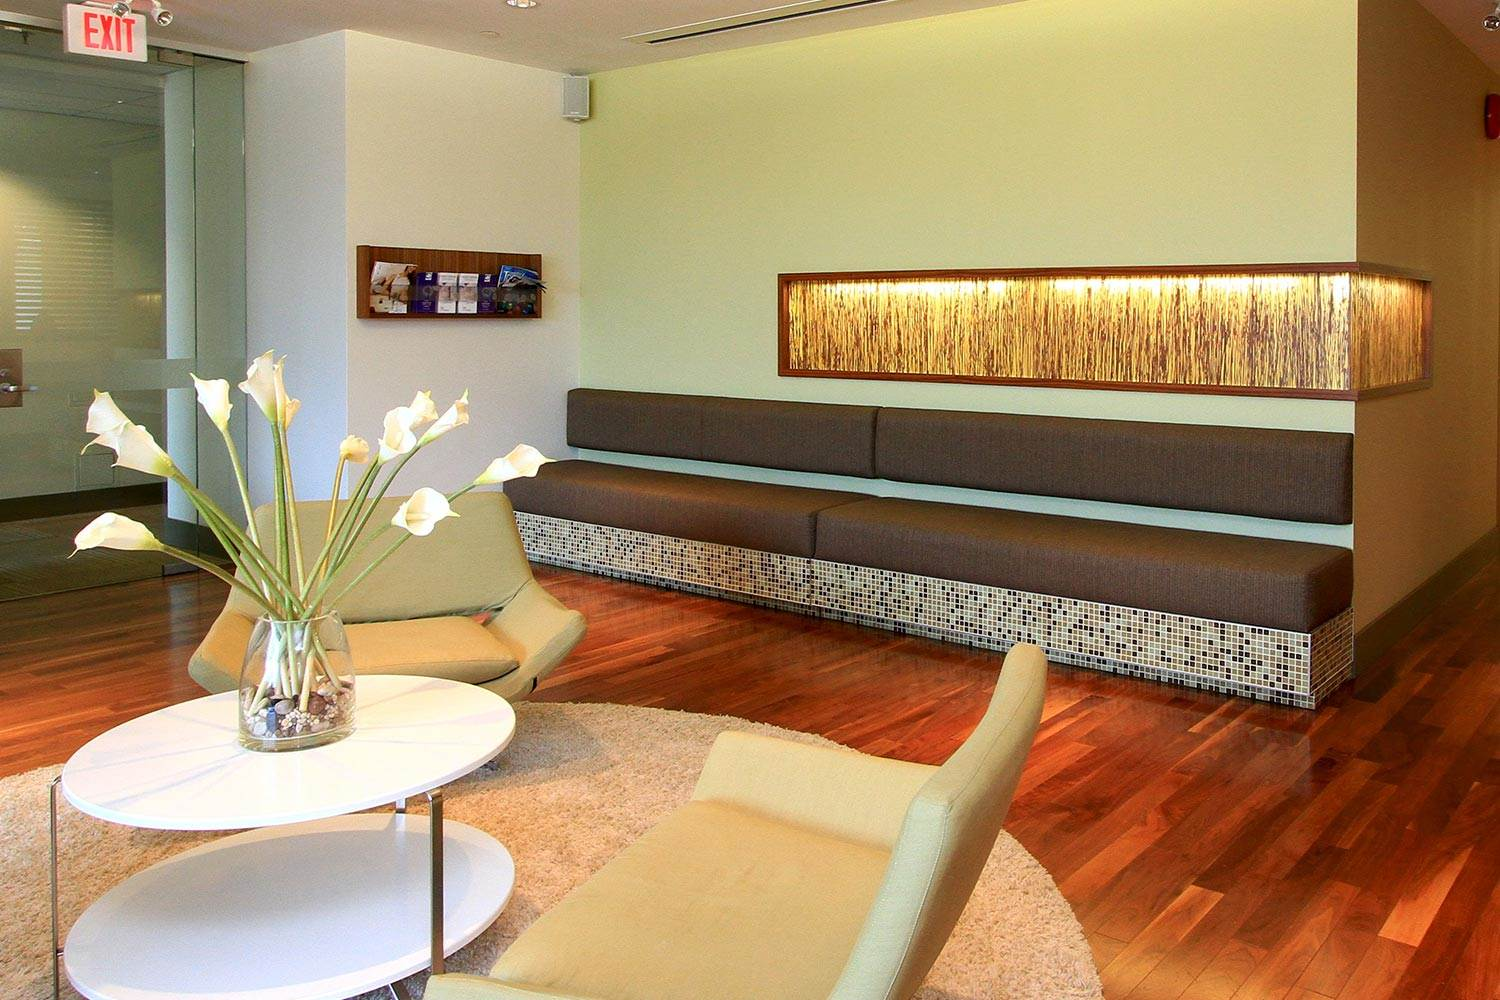 Fertility Clinic in Vancouver BC - PCRM waiting room | PCRM Fertility Clinic Vancouver